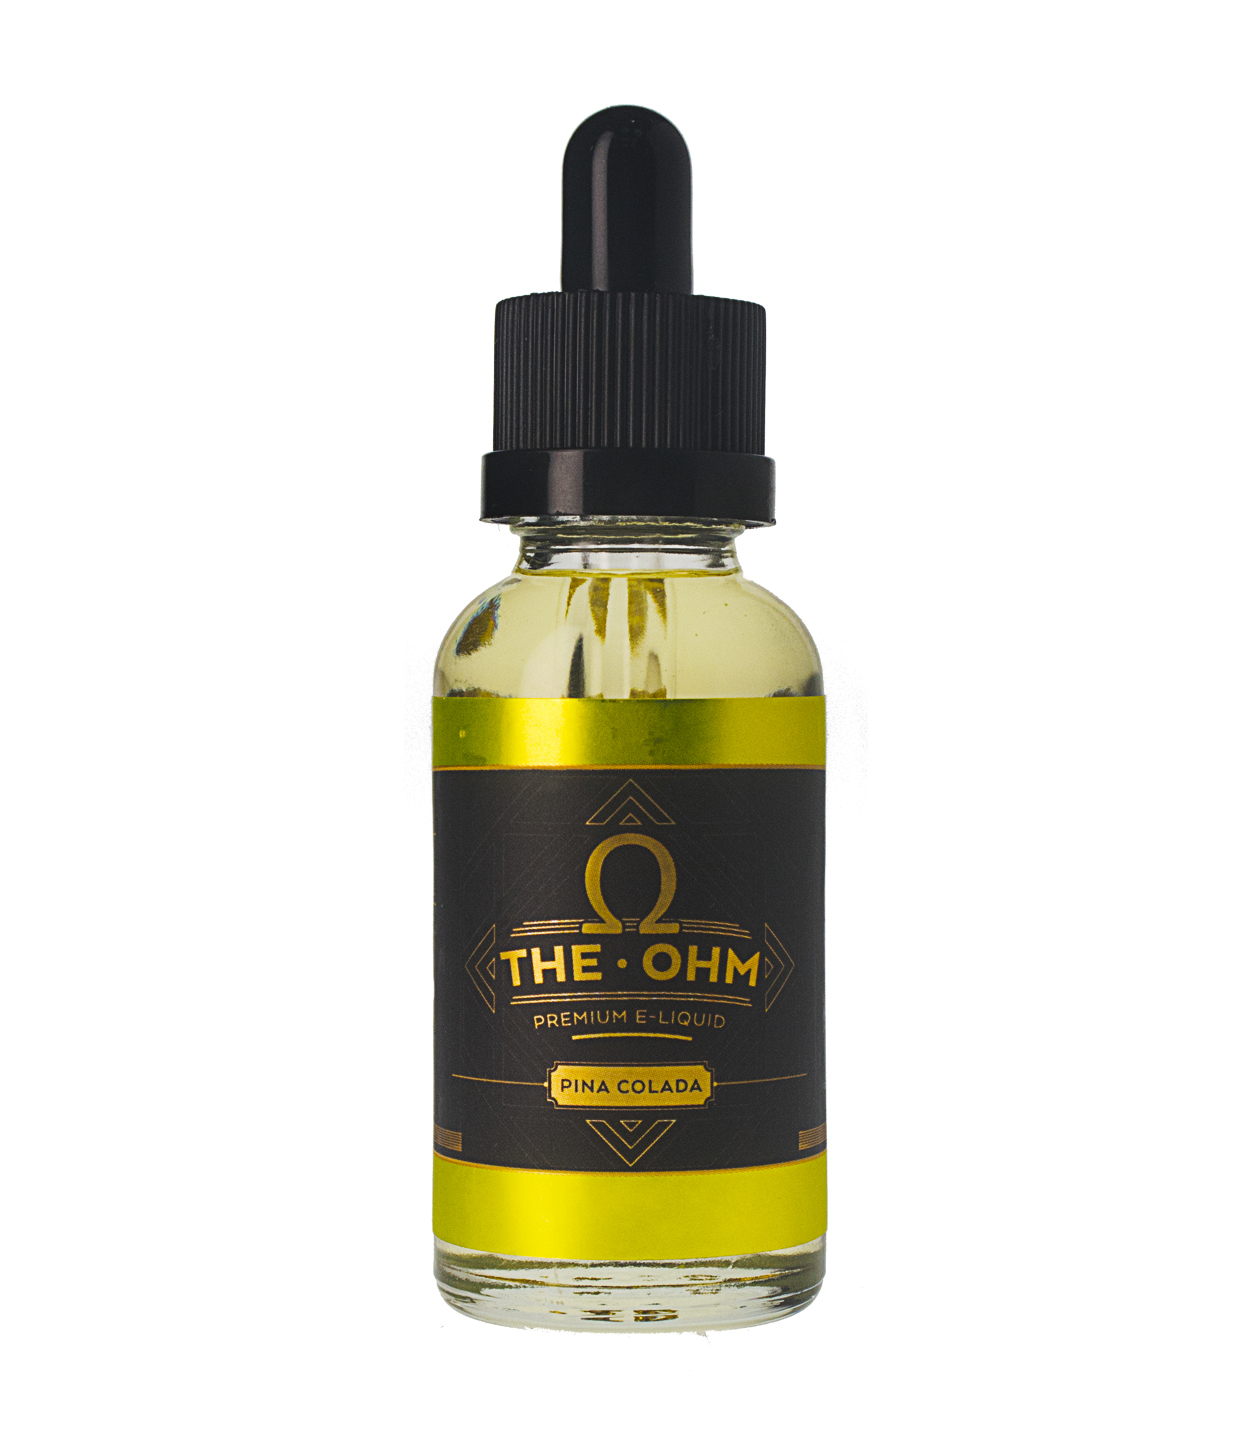 The Ohm: Pina Colada 30ml фото #1